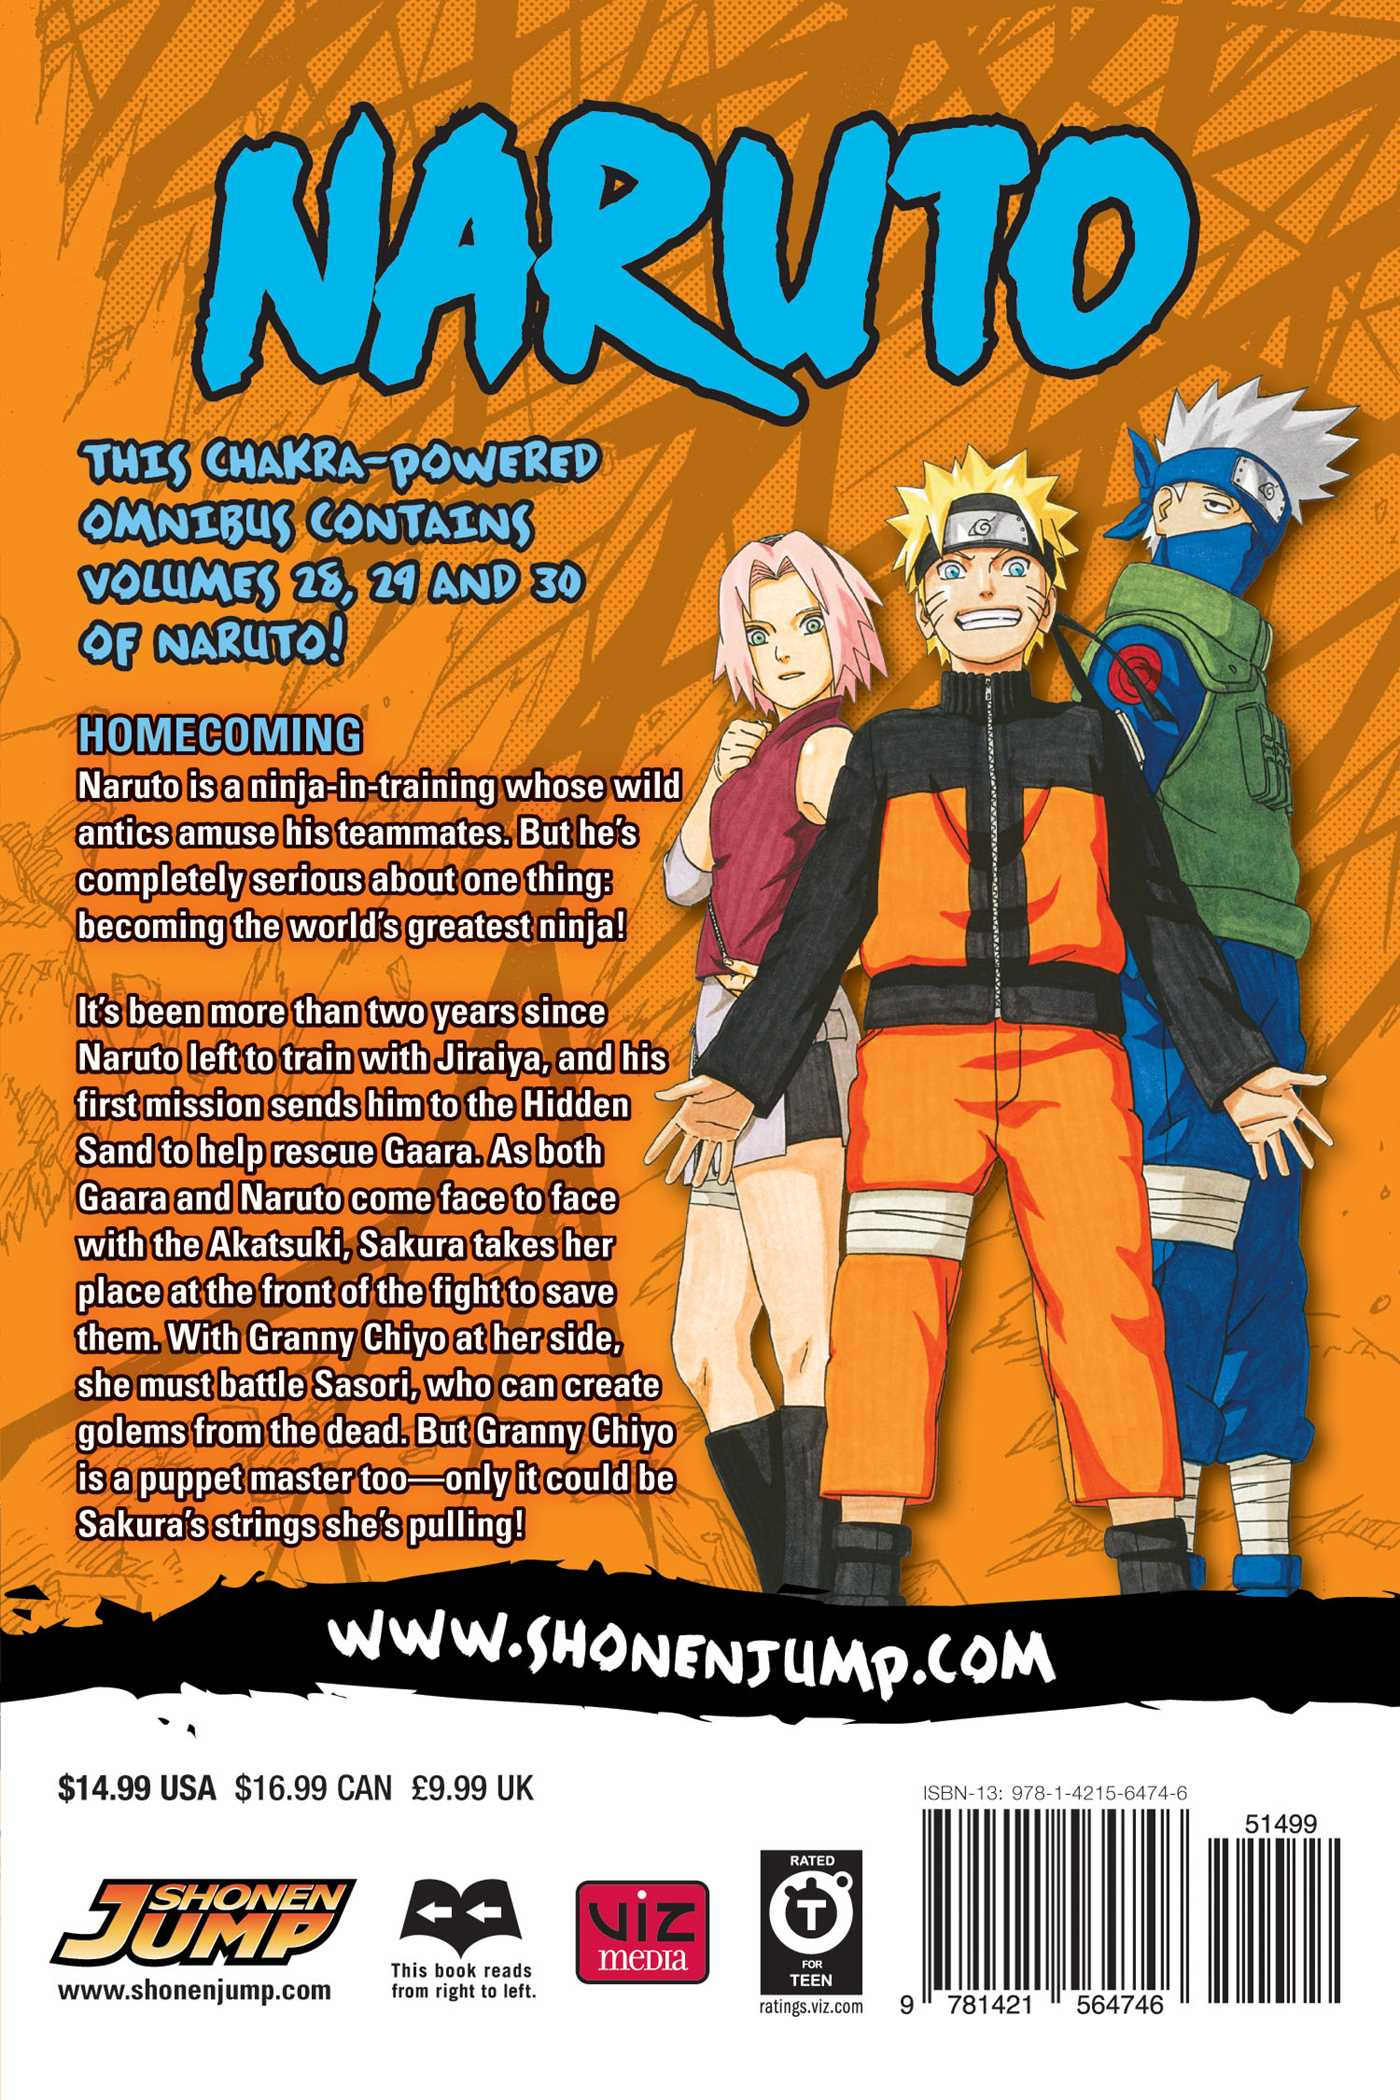 Naruto-3-in-1-edition-vol-10-9781421564746_hr-back